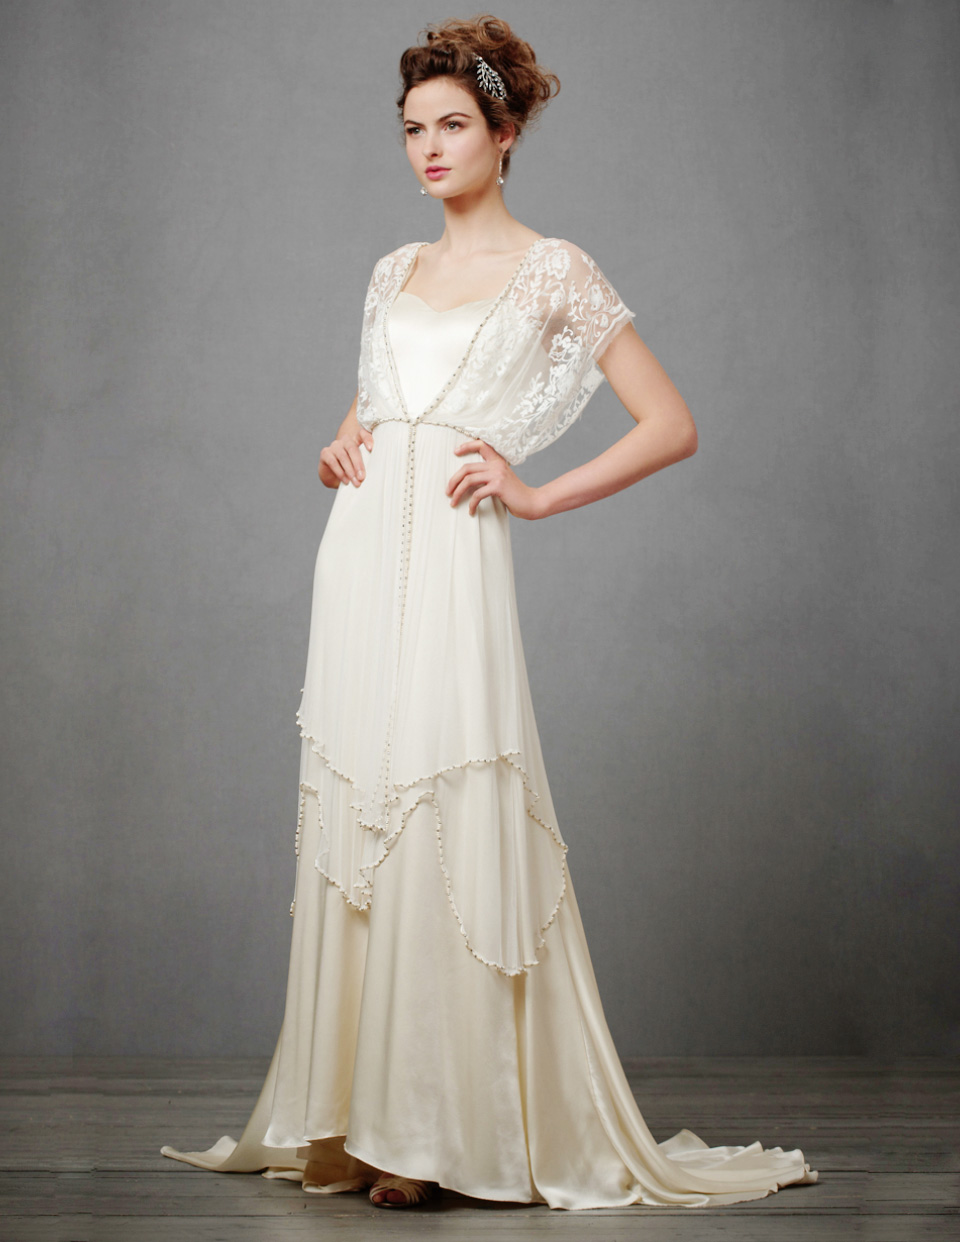 New Wedding Dresses and Accessories at BHLDN. A beautiful new selection of wedding dresses and bridesmaid dresses await you at BHLDN! The Penelope Gown has beautiful sheer illusion netting, a flowy skirt and beautiful tie at the back. It also retails for under $!